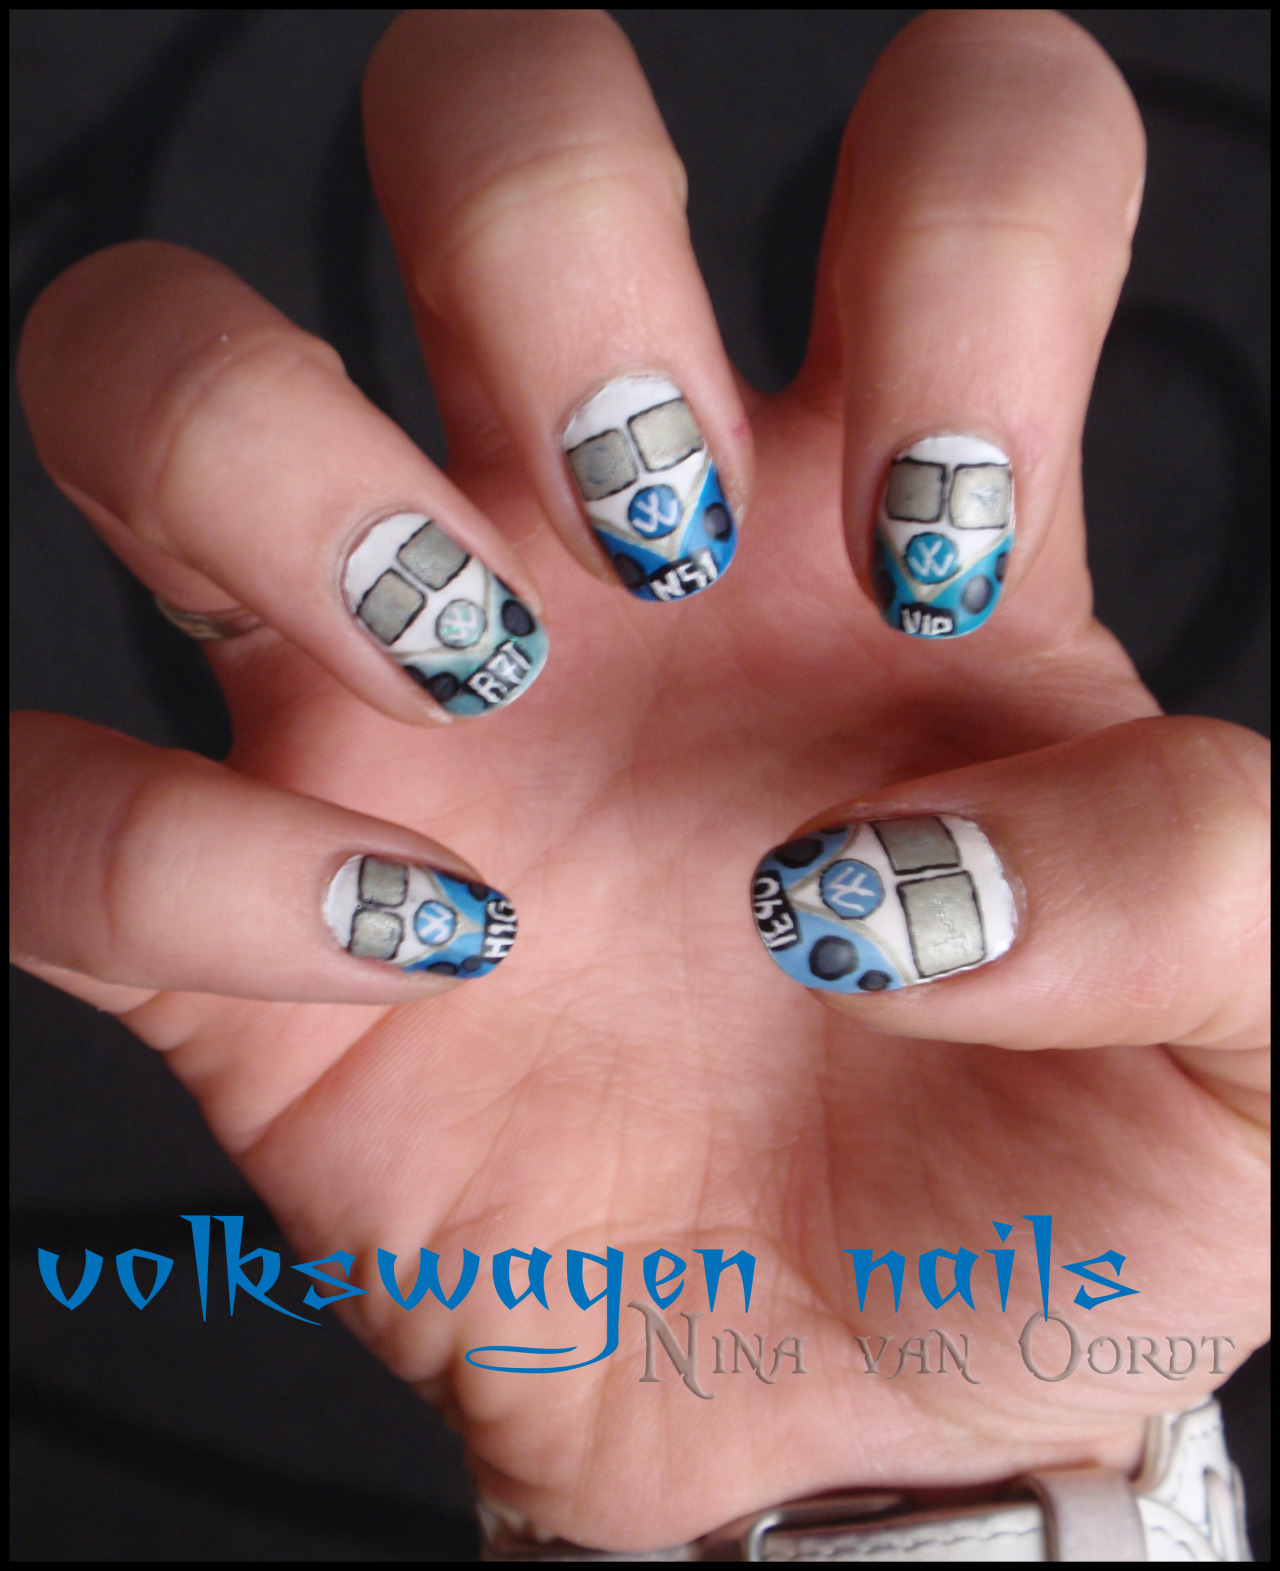 Volkswagen nails